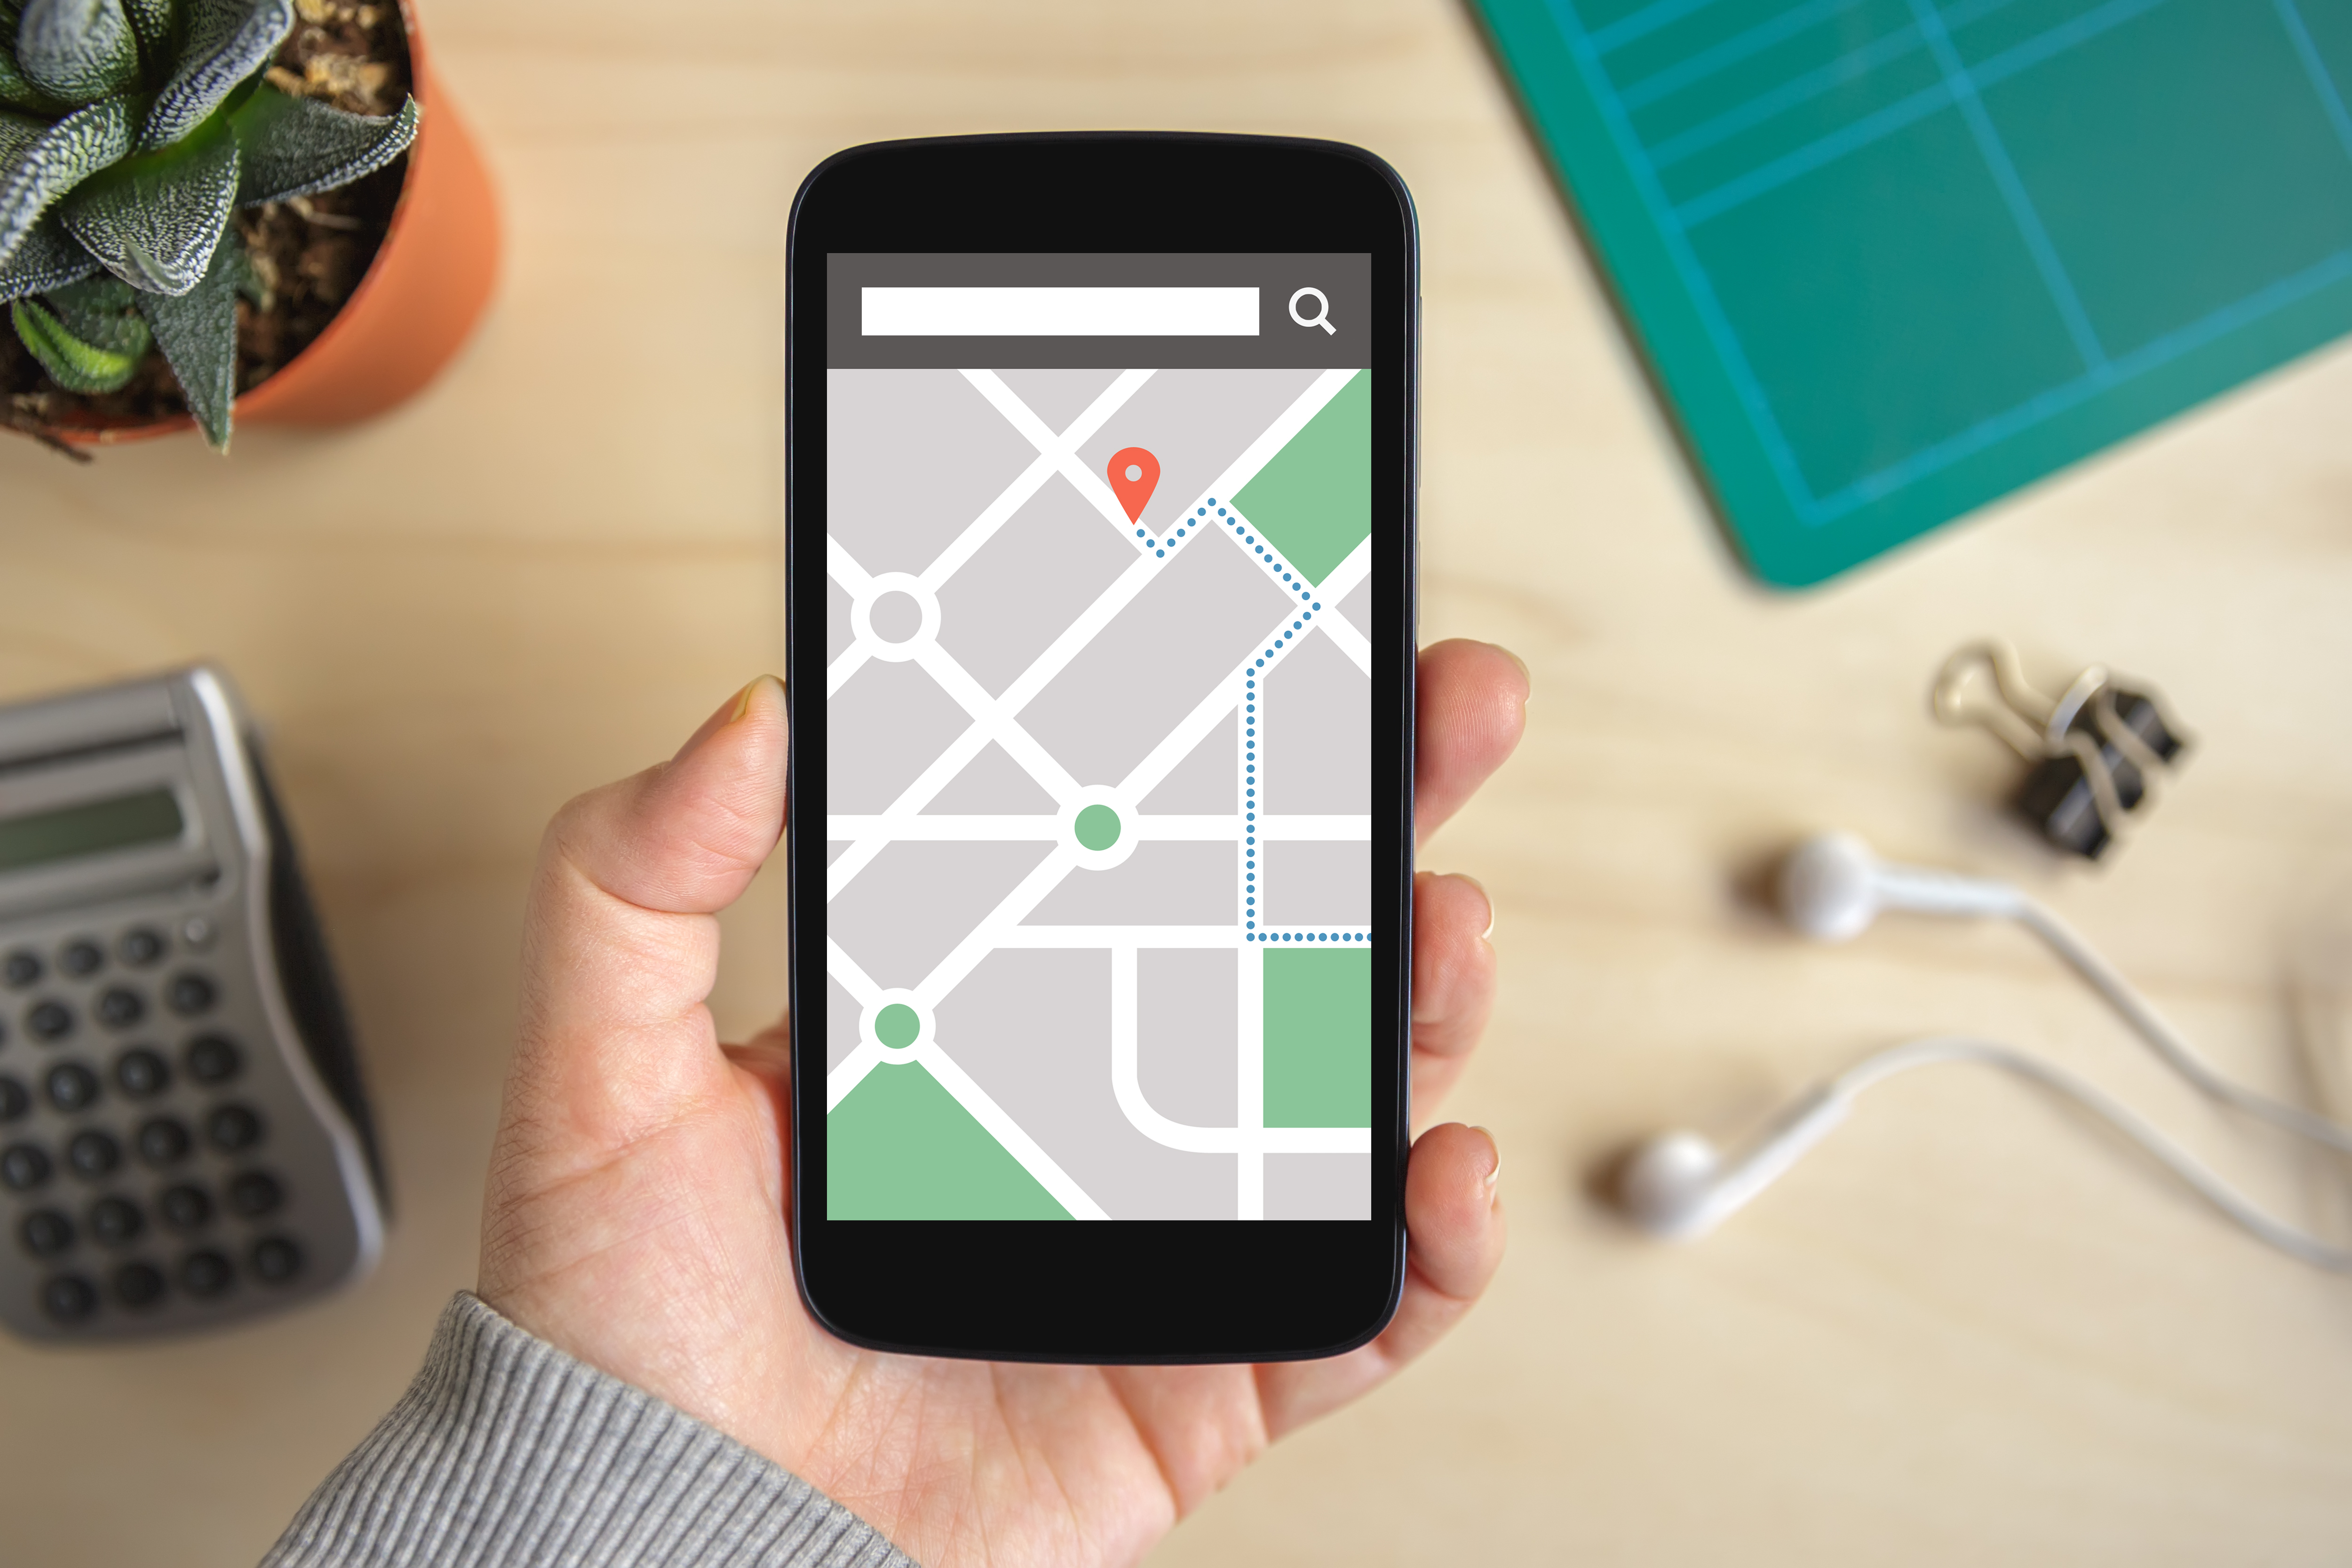 Hand-holding-phone-with-map-gps-navigation-application-on-screen-527522894_5000x3333